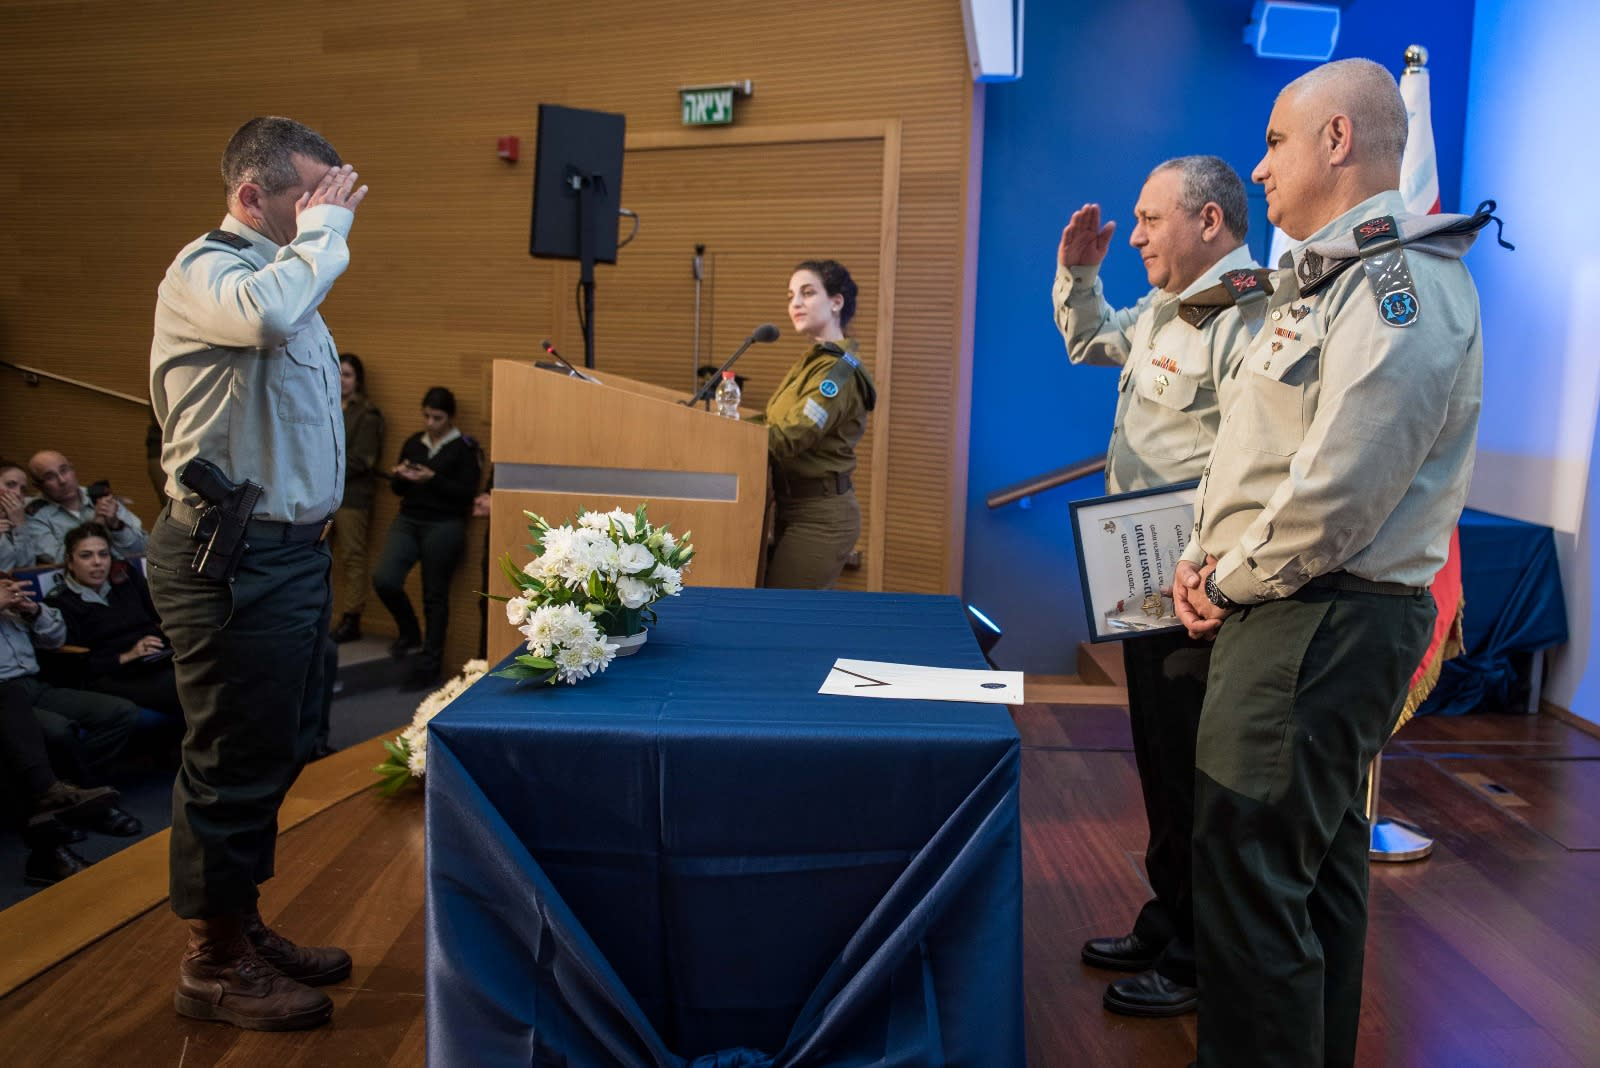 IDF Chief of Staff Gadi Eisenkot speaks at the annual awards for outstanding IDF units. (IDF SPOKESPERSON'S UNIT)